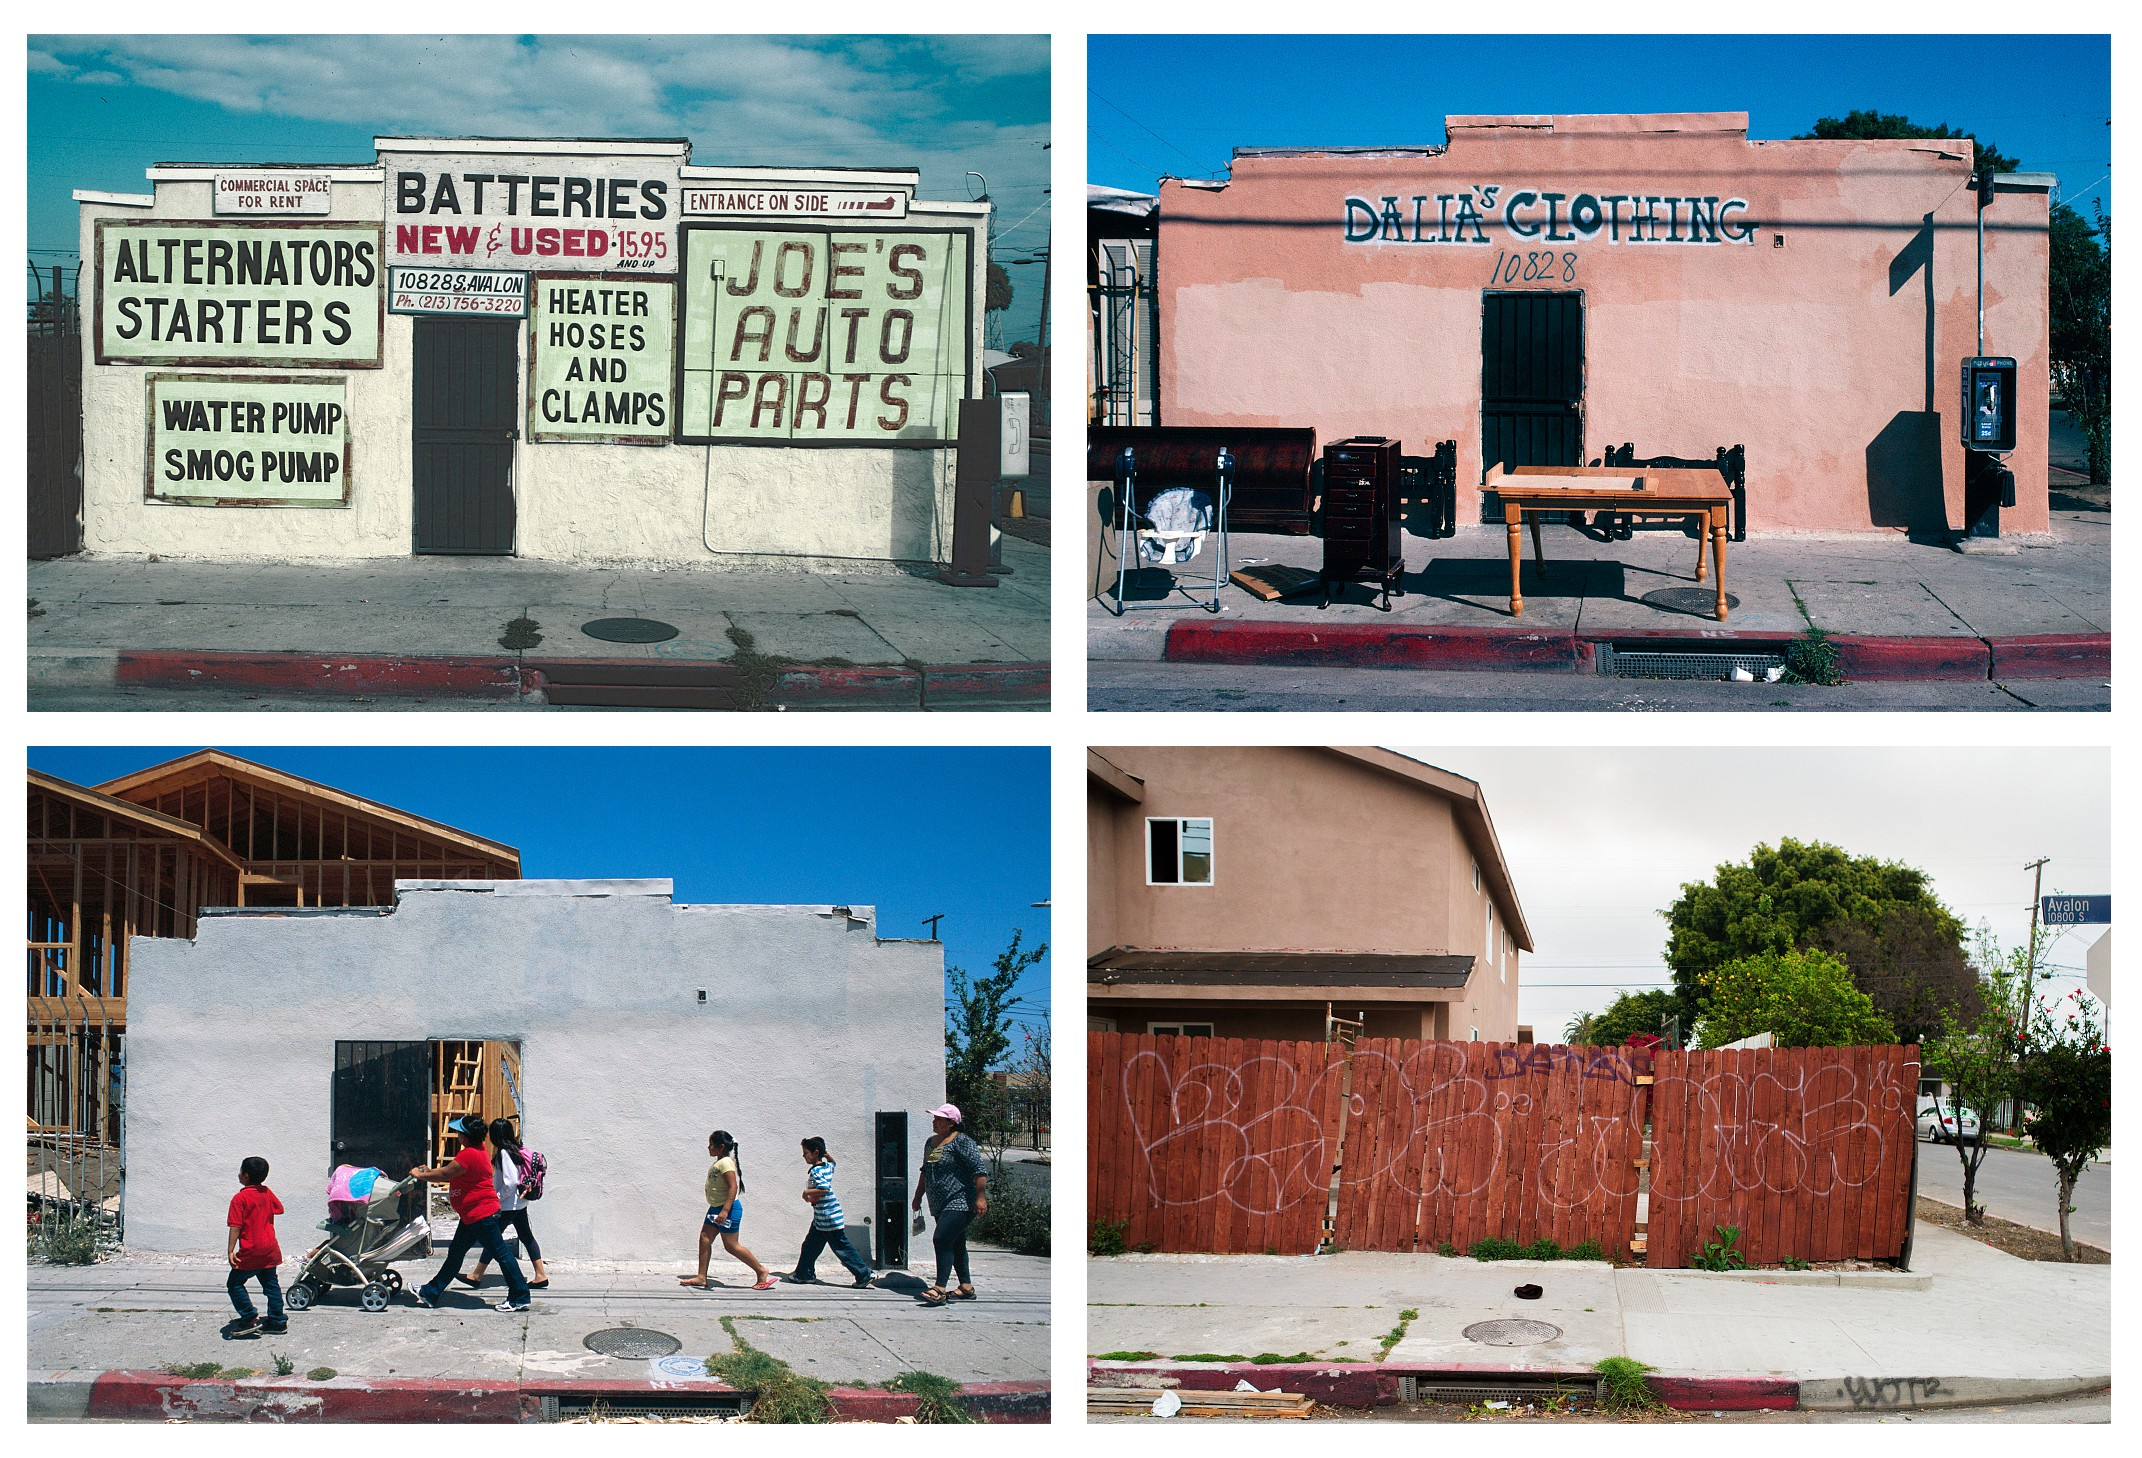 Photos: What does it look like to stand in the same spot for 40 years?